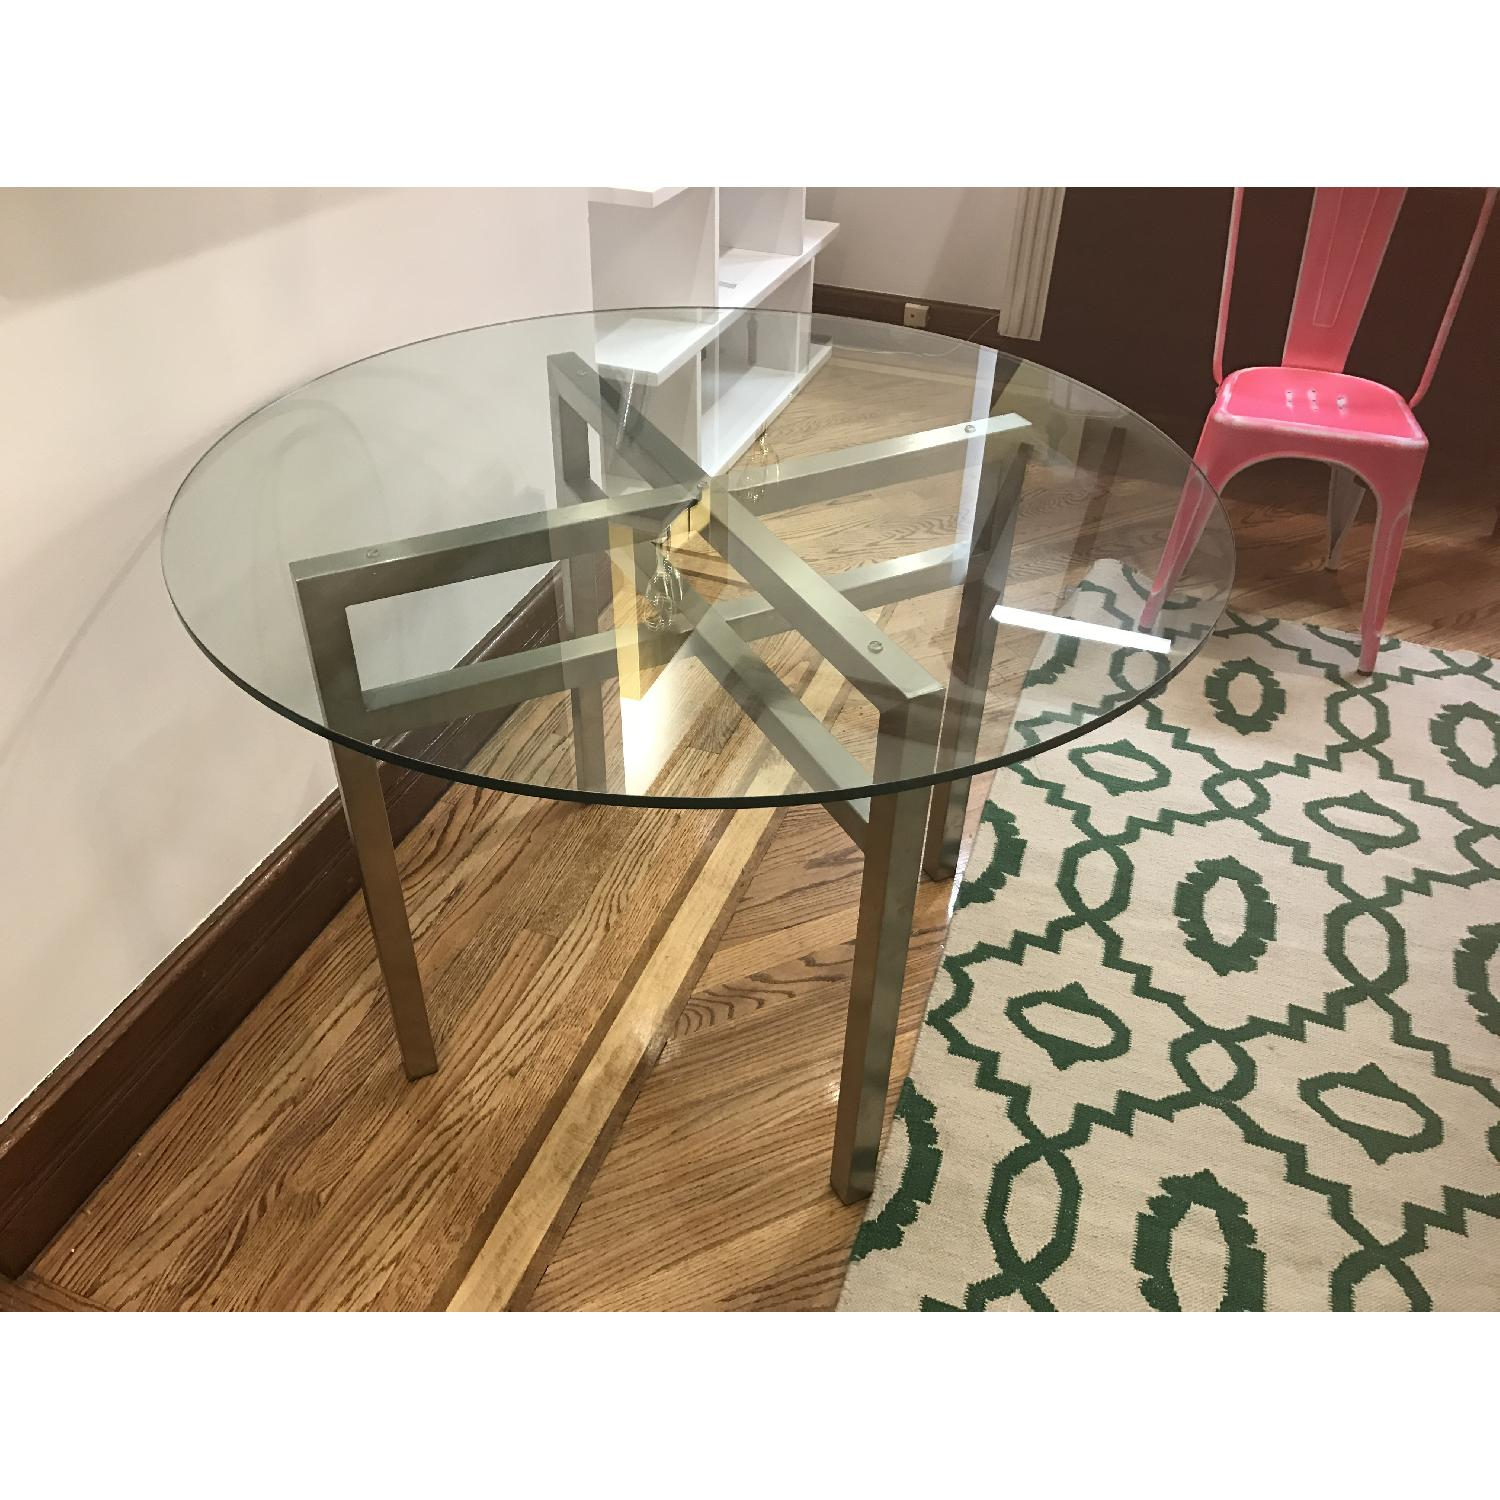 Room & Board Benson Dining Table in Stainless Steel & Glass - image-3